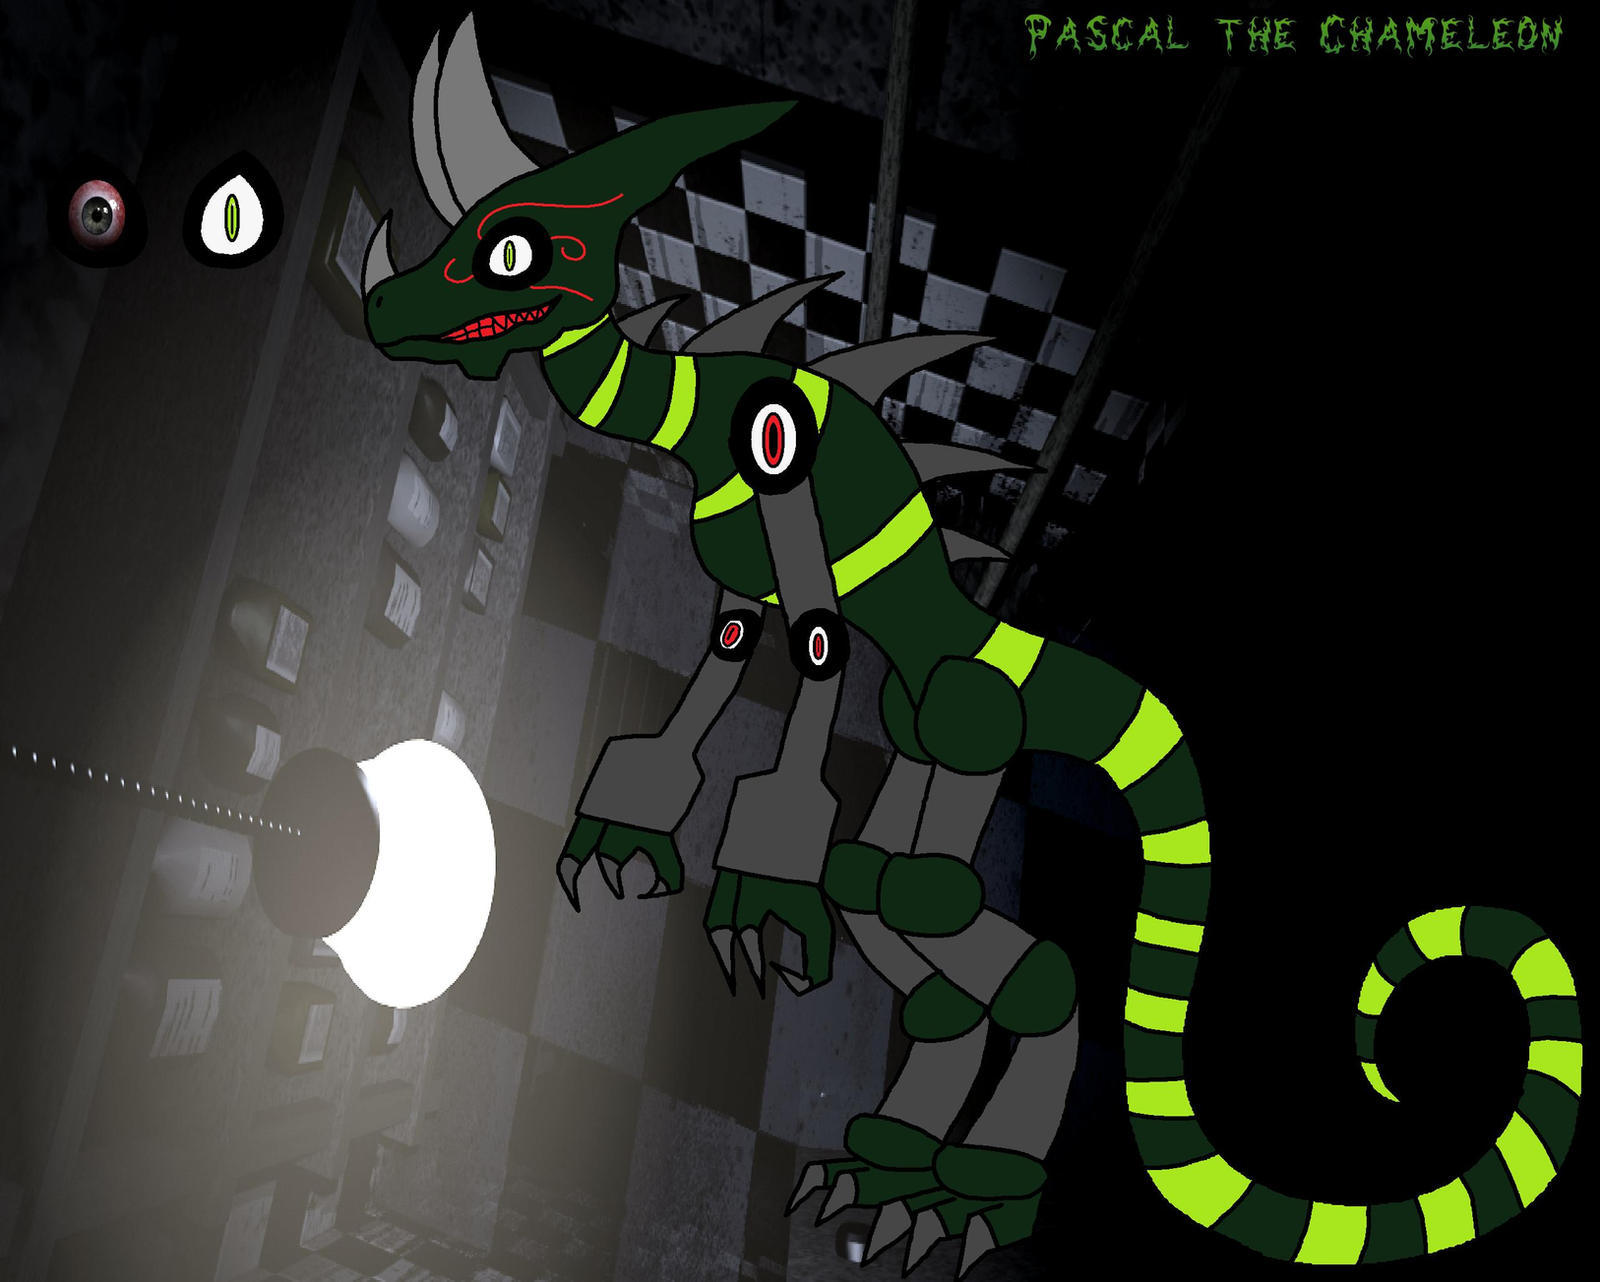 FNAF OC: Pascal the Chameleon by ScarletSpike on DeviantArt